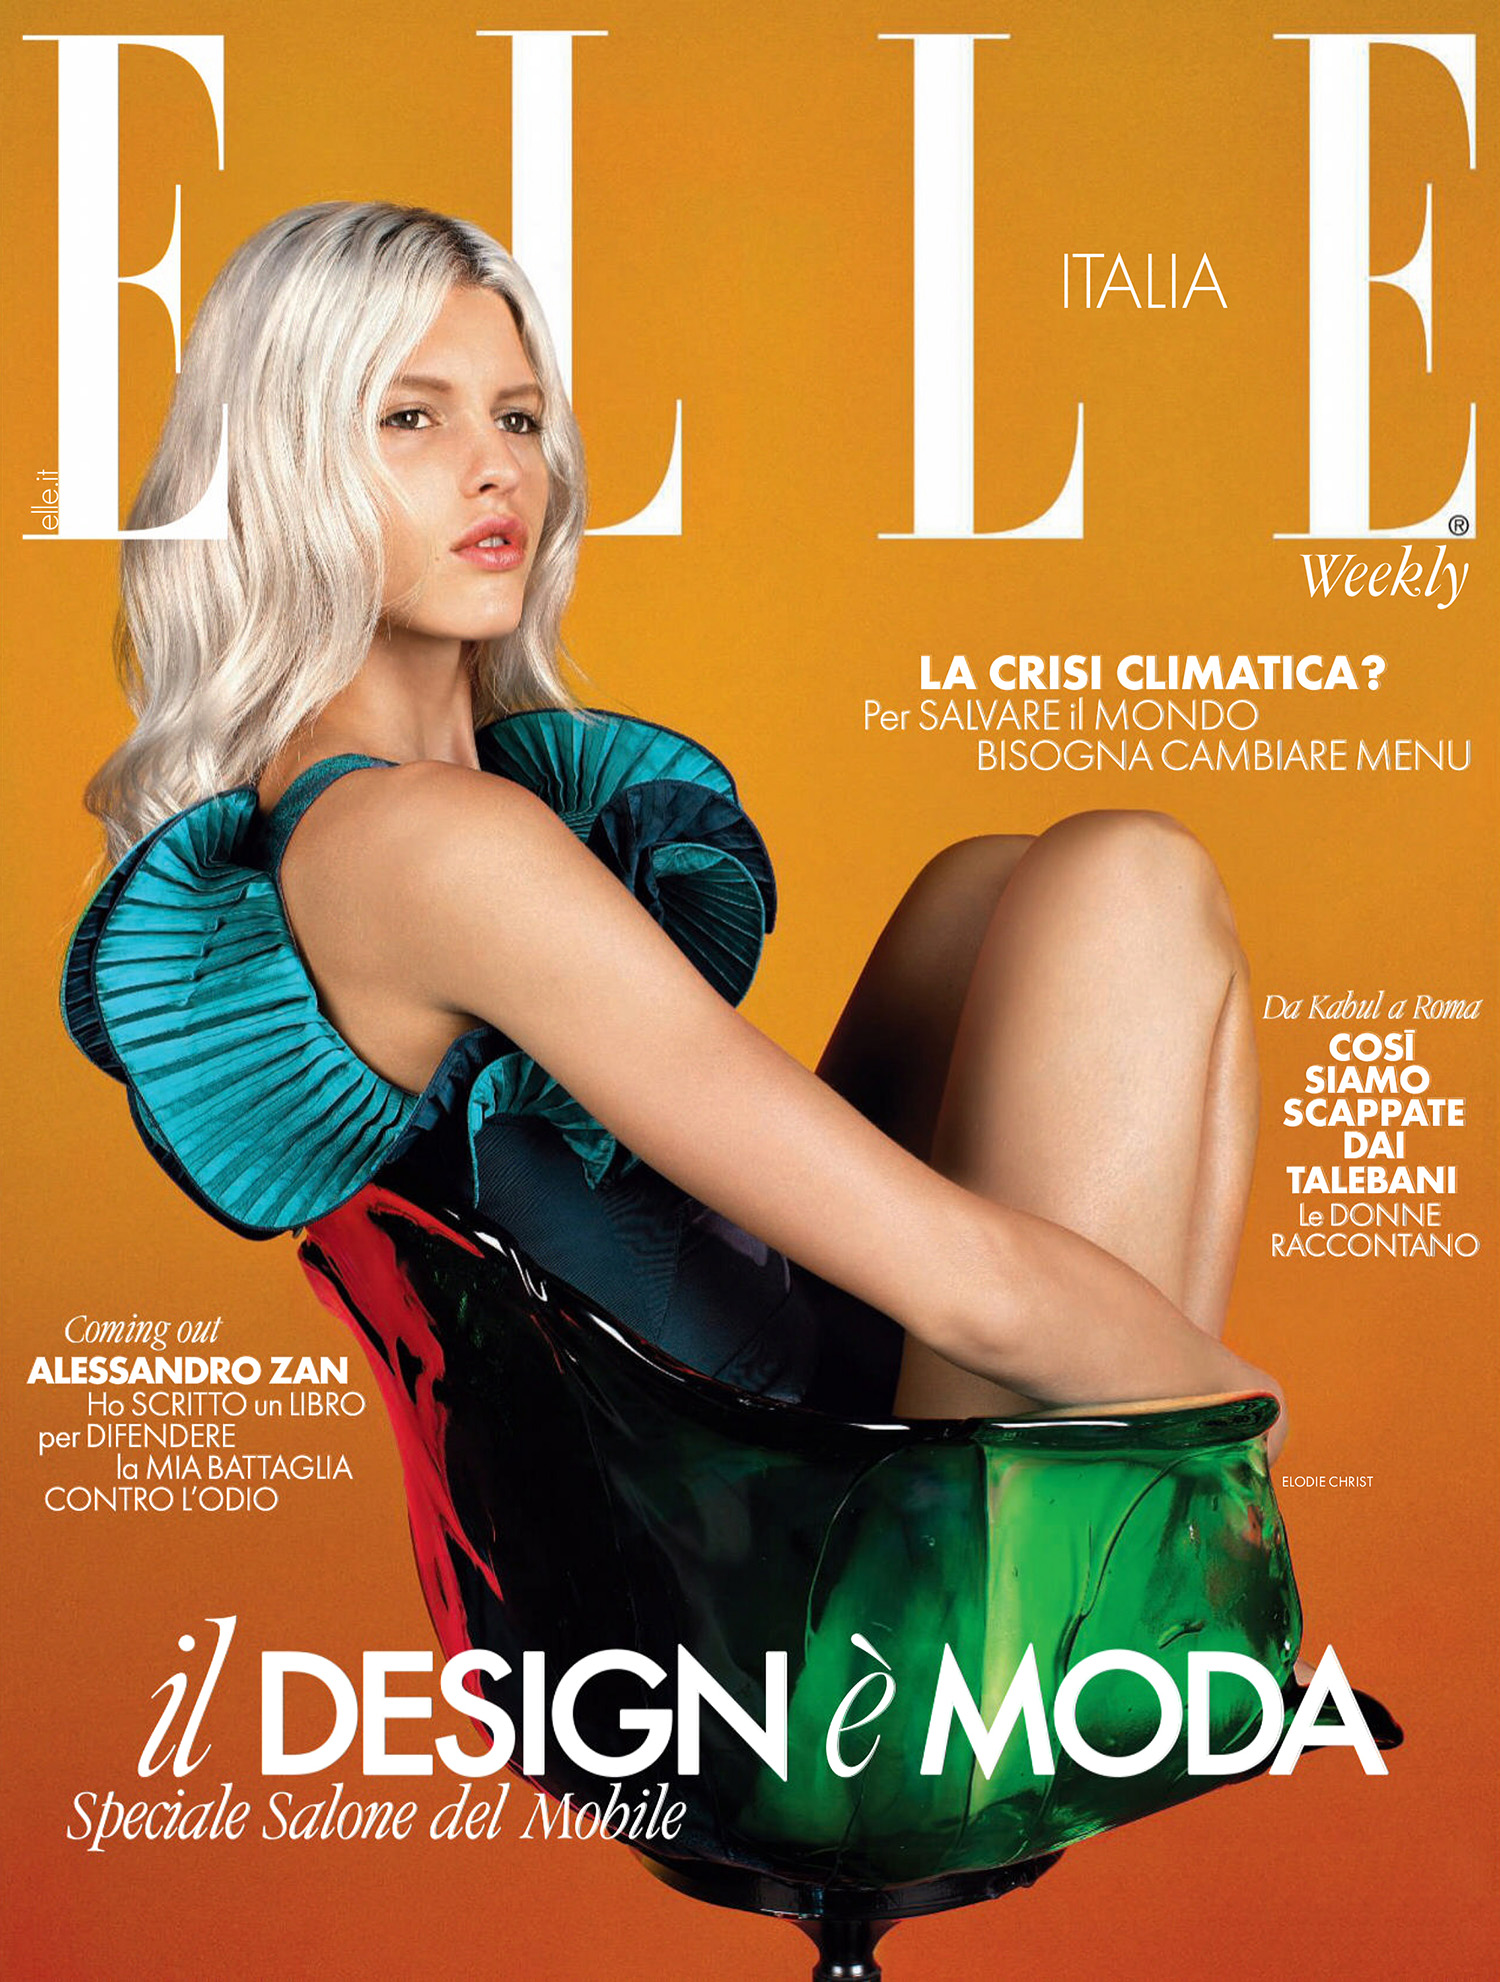 Elodie Christ covers Elle Italia September 9th, 2021 by Luca Stoppini